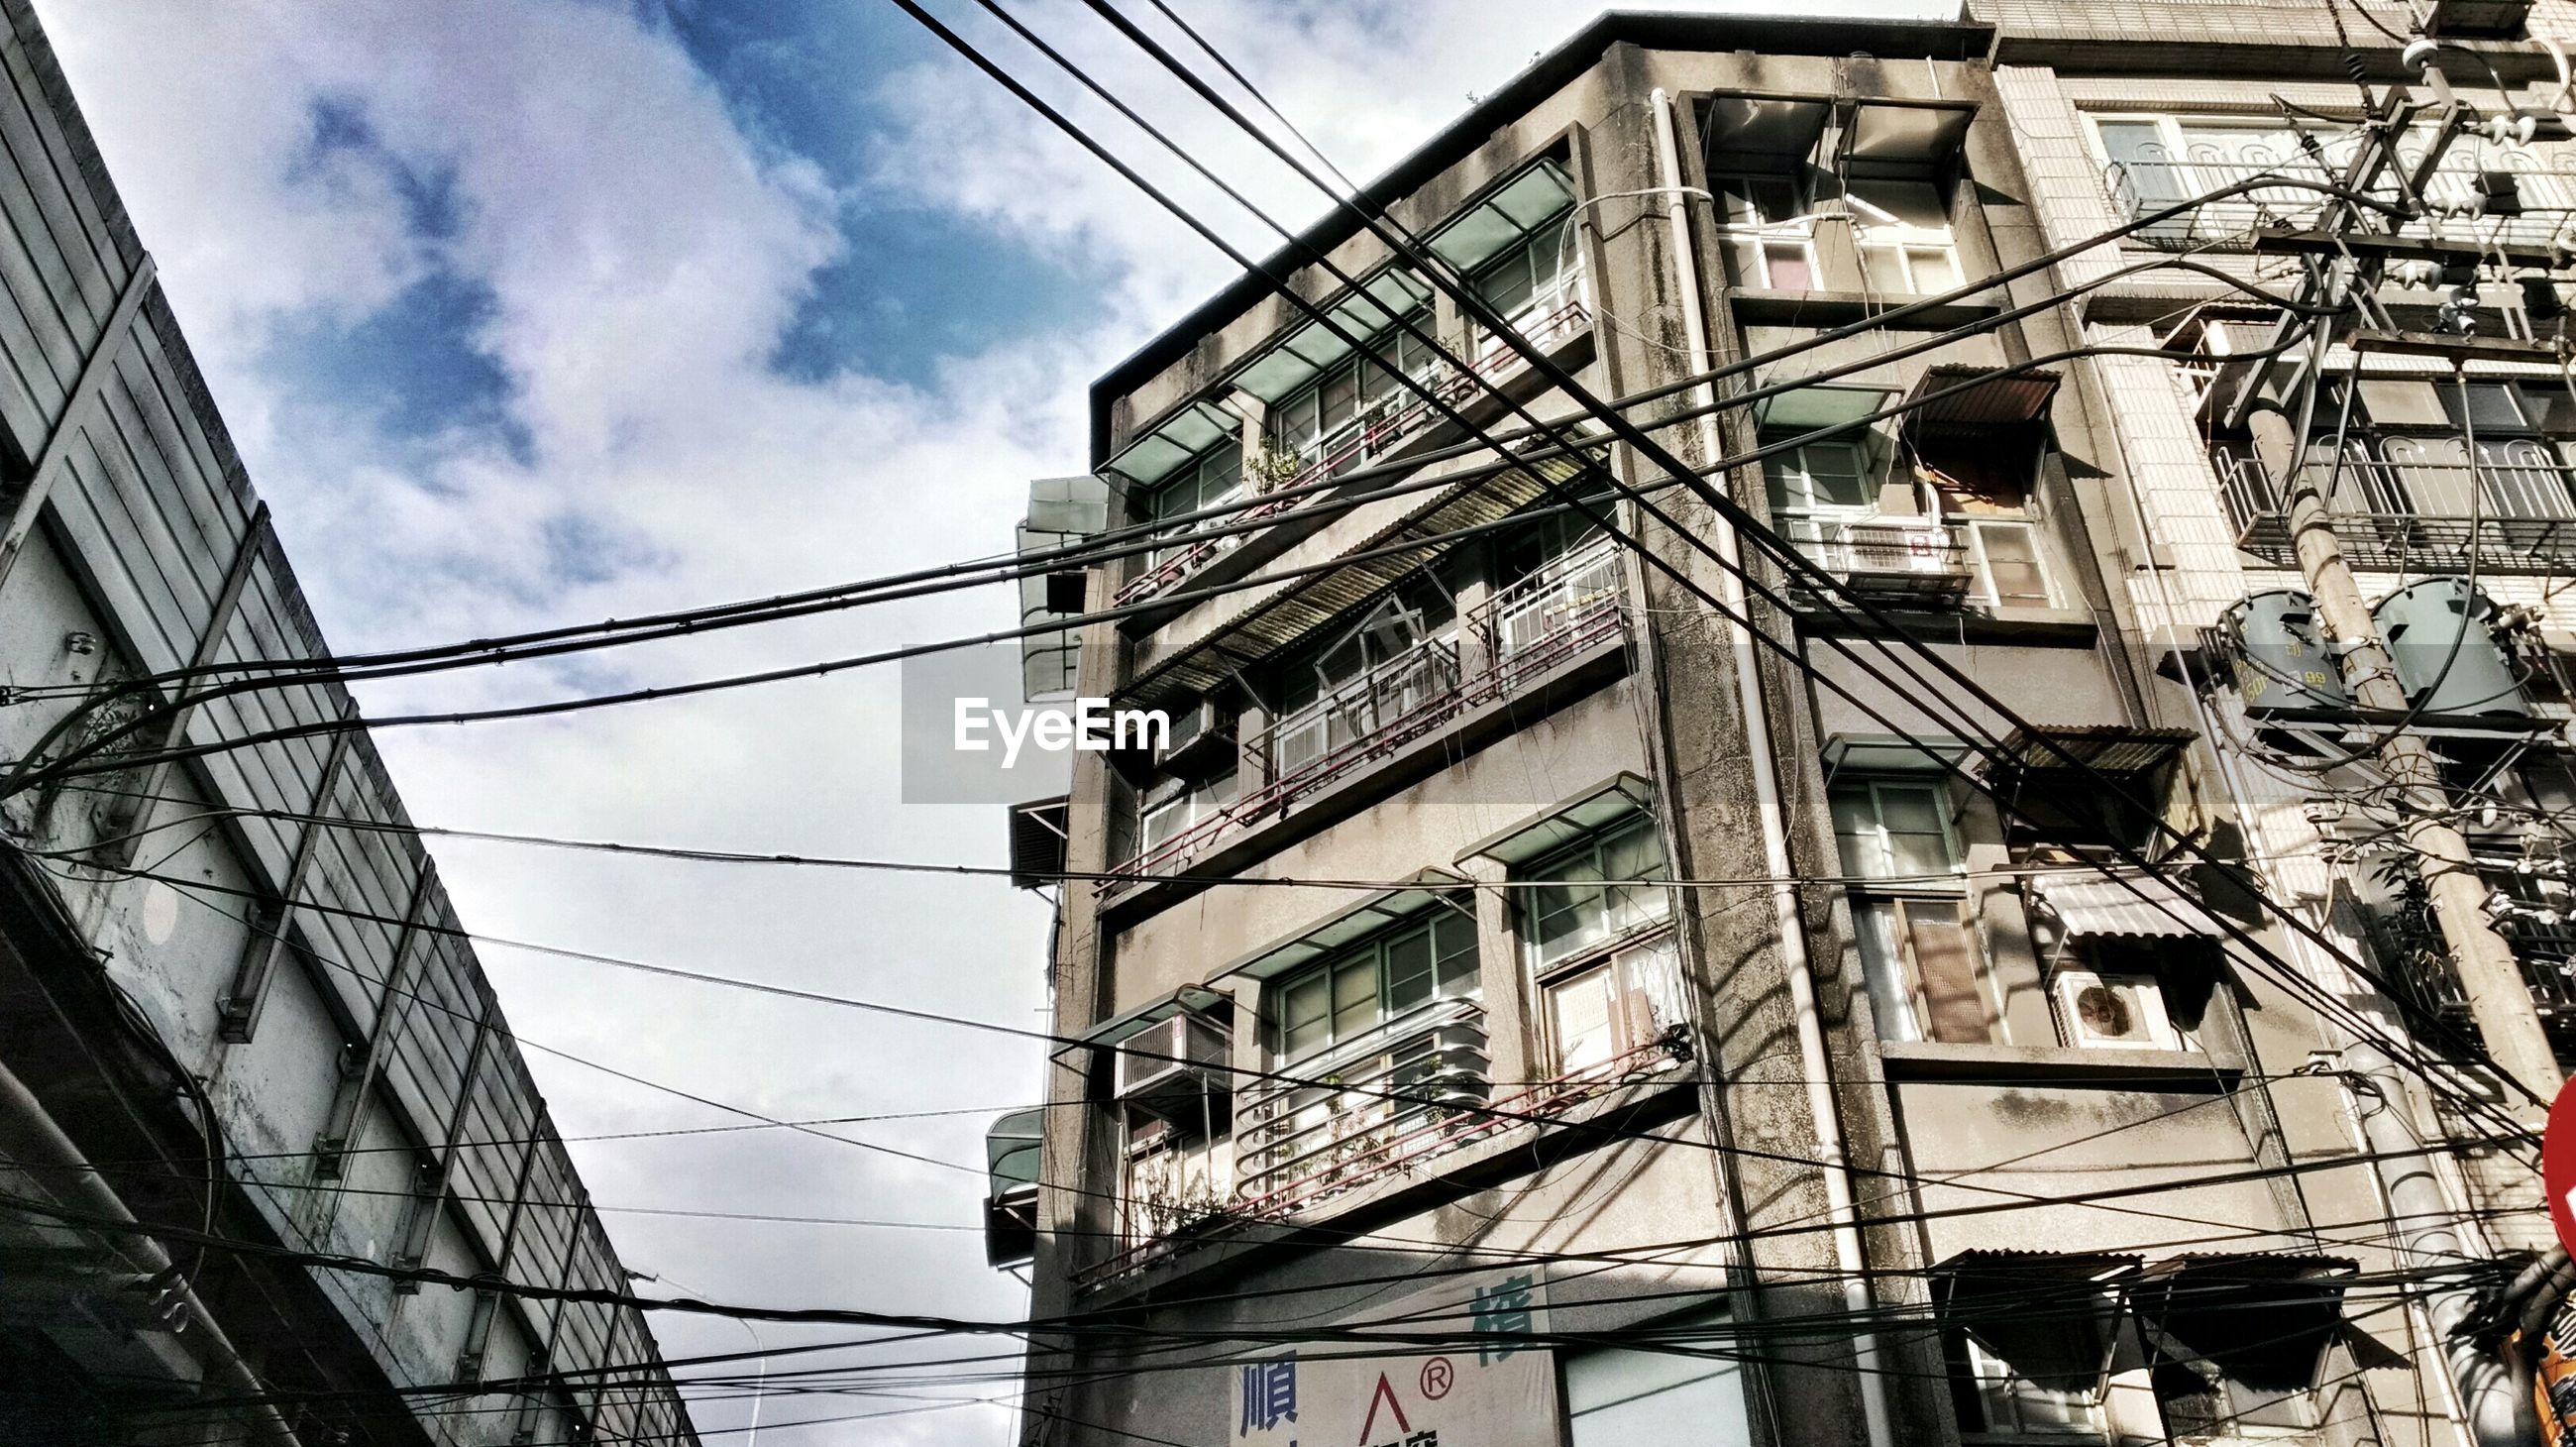 Low angle view of power cables against city building